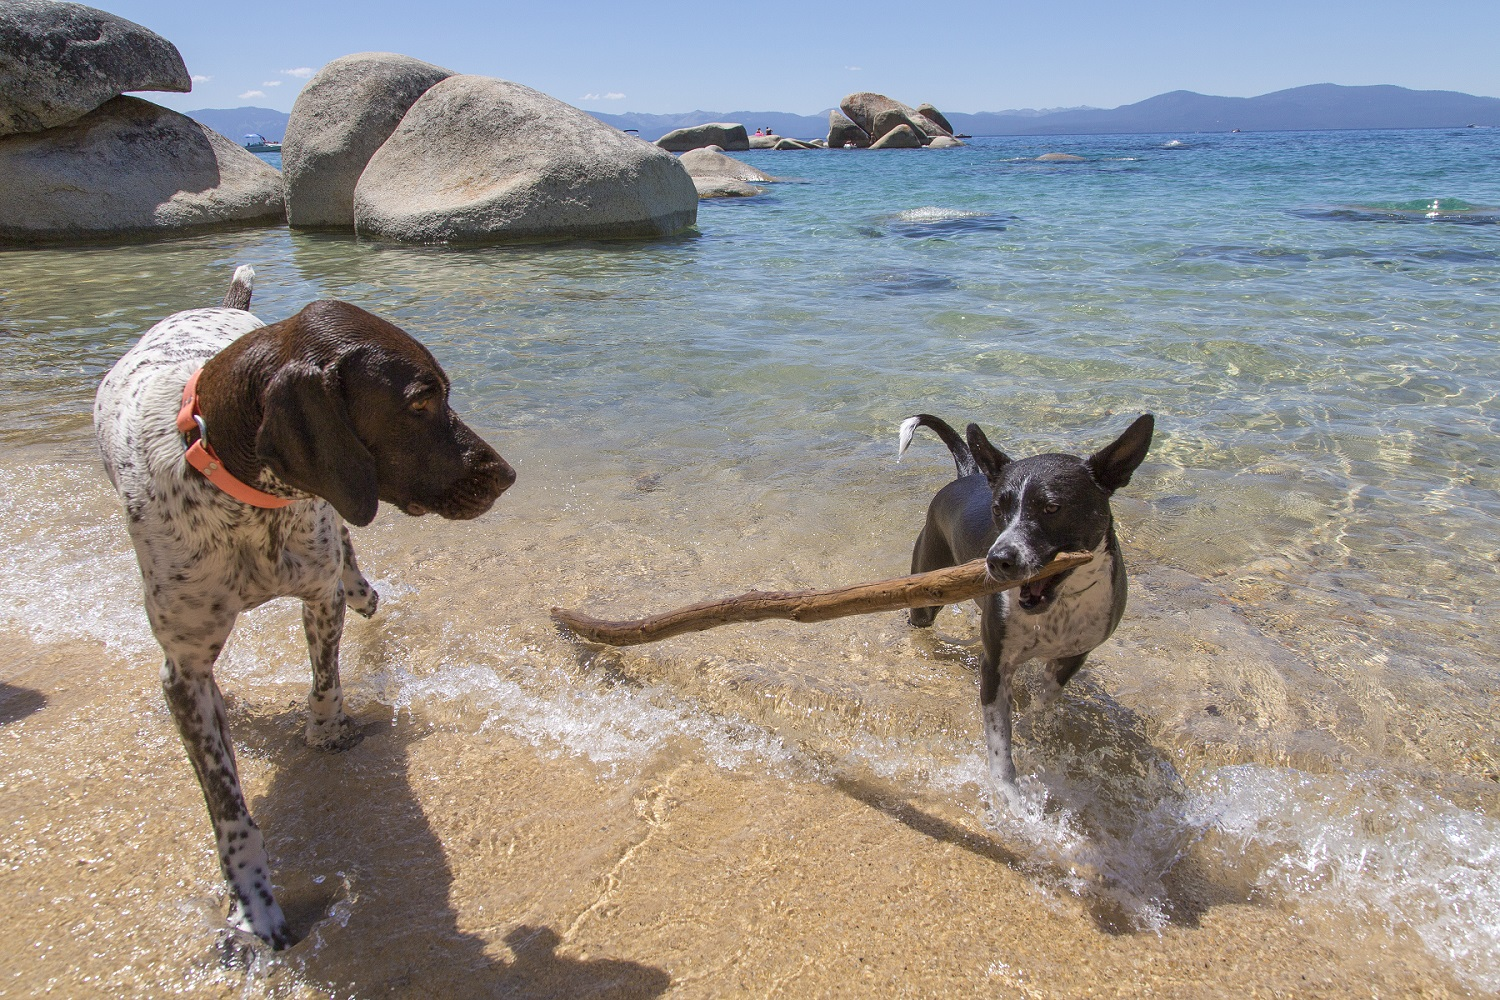 Two dogs emerge from Lake Tahoe at Whale Beach after fetching a large stick from the water.